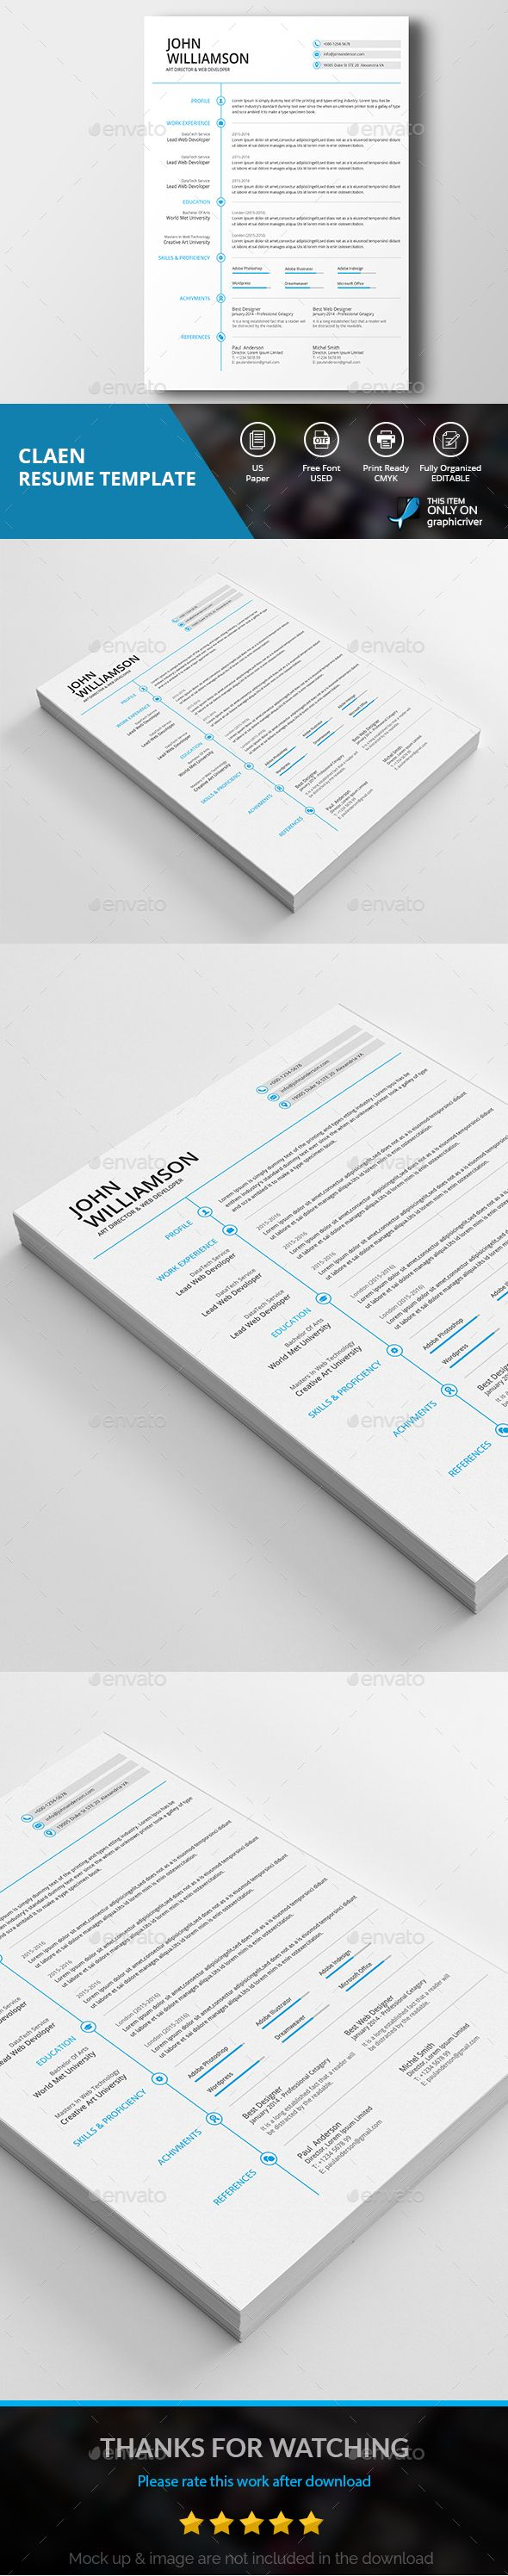 how to update resume%0A Resume CV  Bailey by bilmaw creative on Creative Market   RESUME    Pinterest   Resume cv